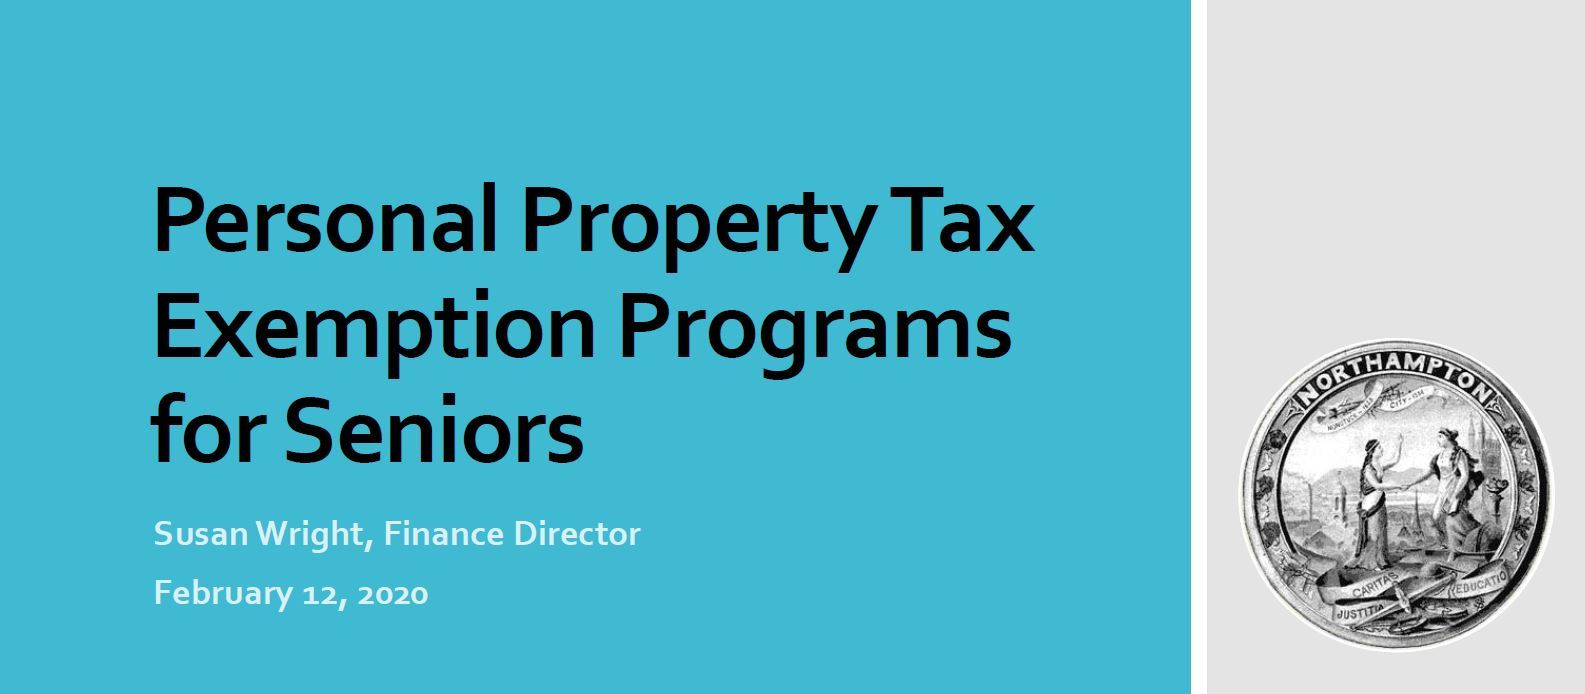 Image of Personal Property Tax Exemption Programs